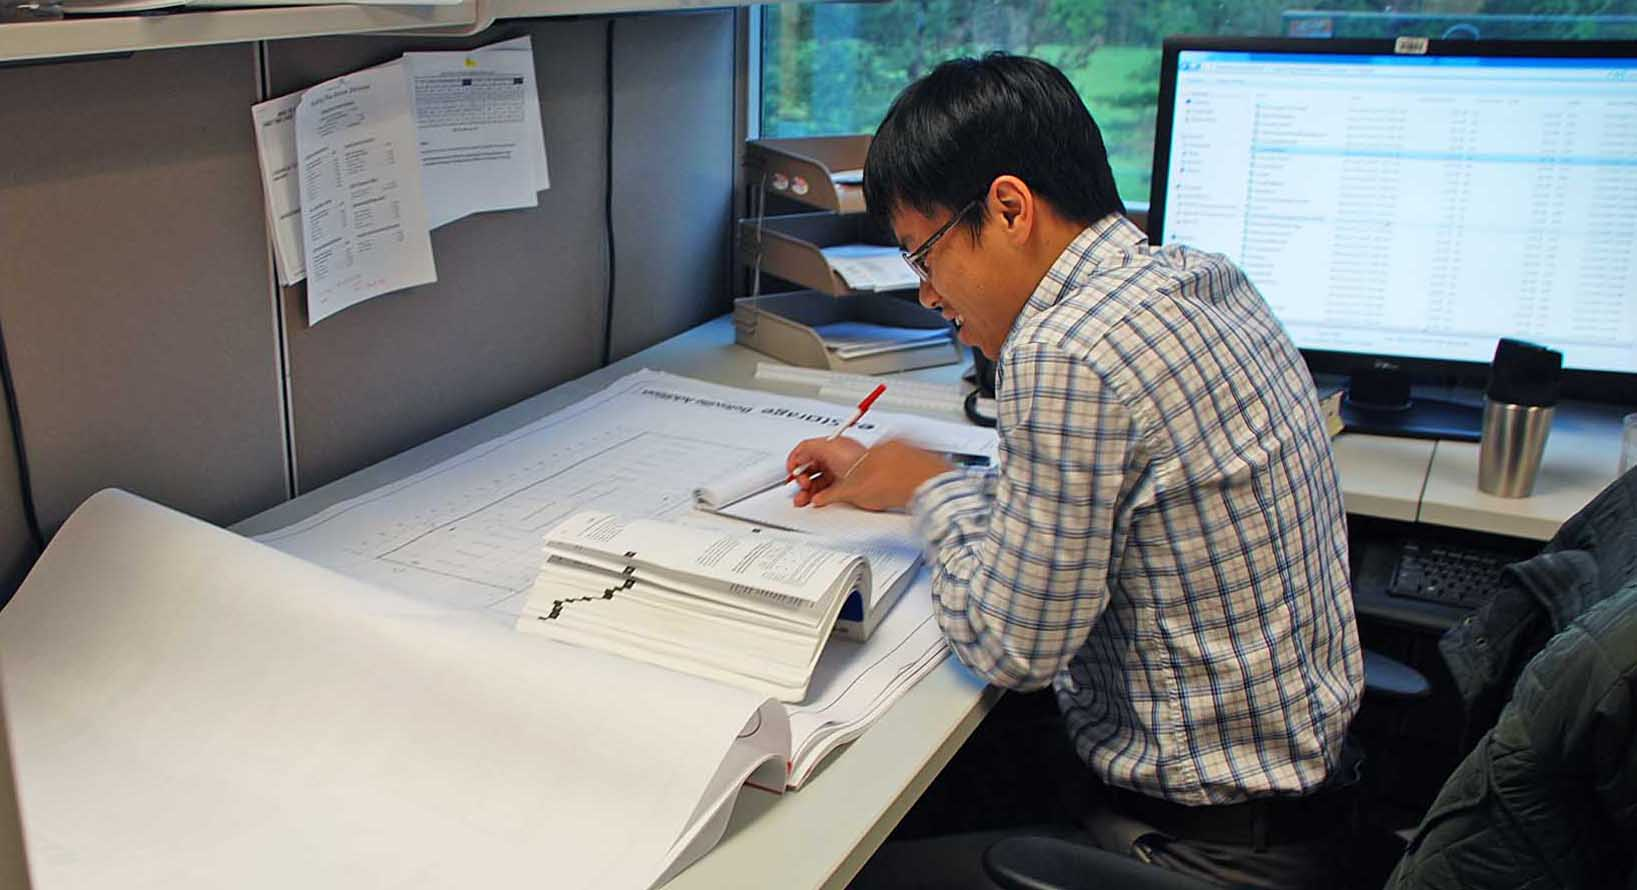 Building Plan Review employee reviewing plans